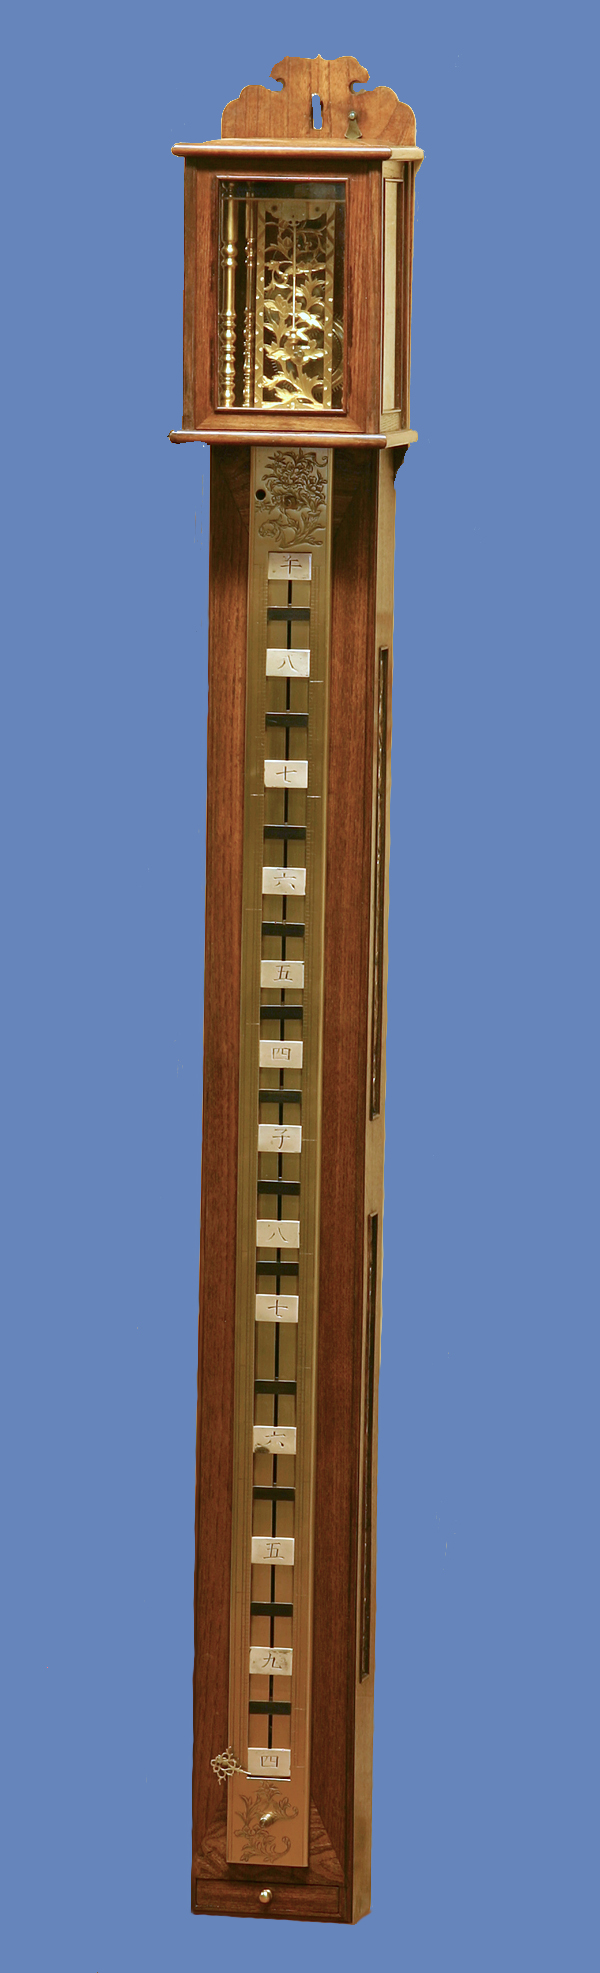 c.1850 Massive Japanese Striking Stick Clock.